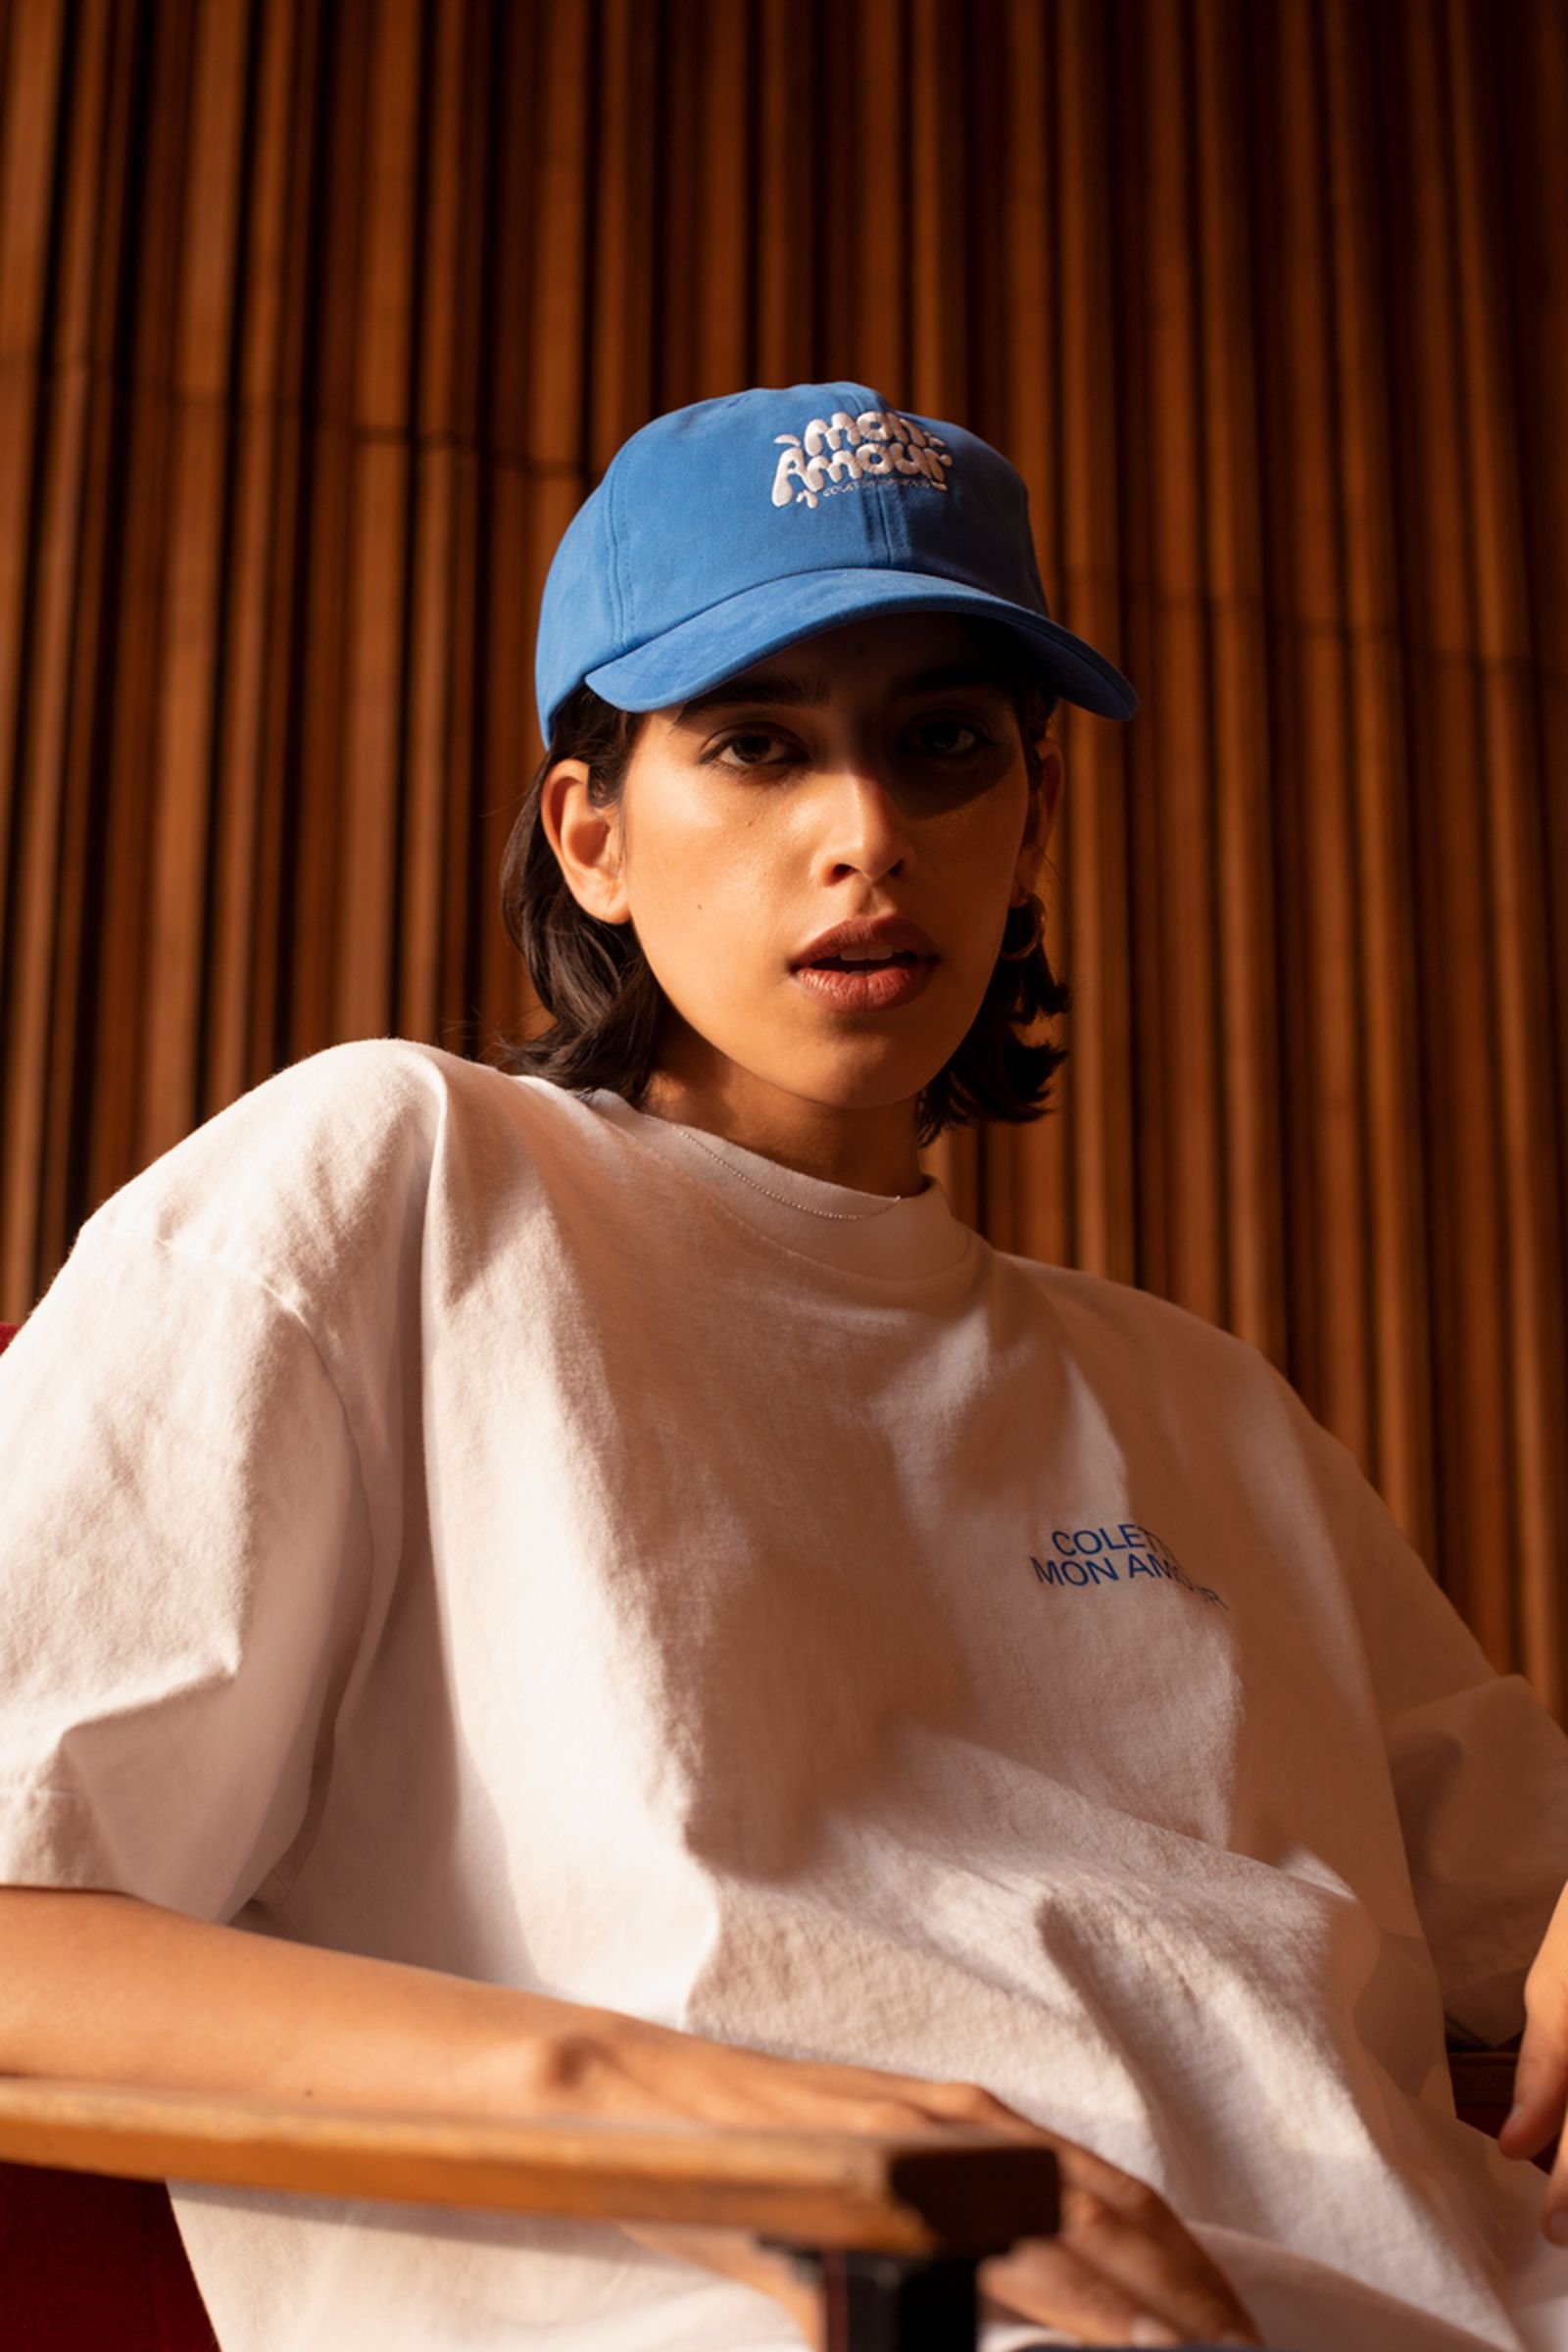 'Colette, Mon Amour' Collection at Highsnobiety Cap and T-Shirt